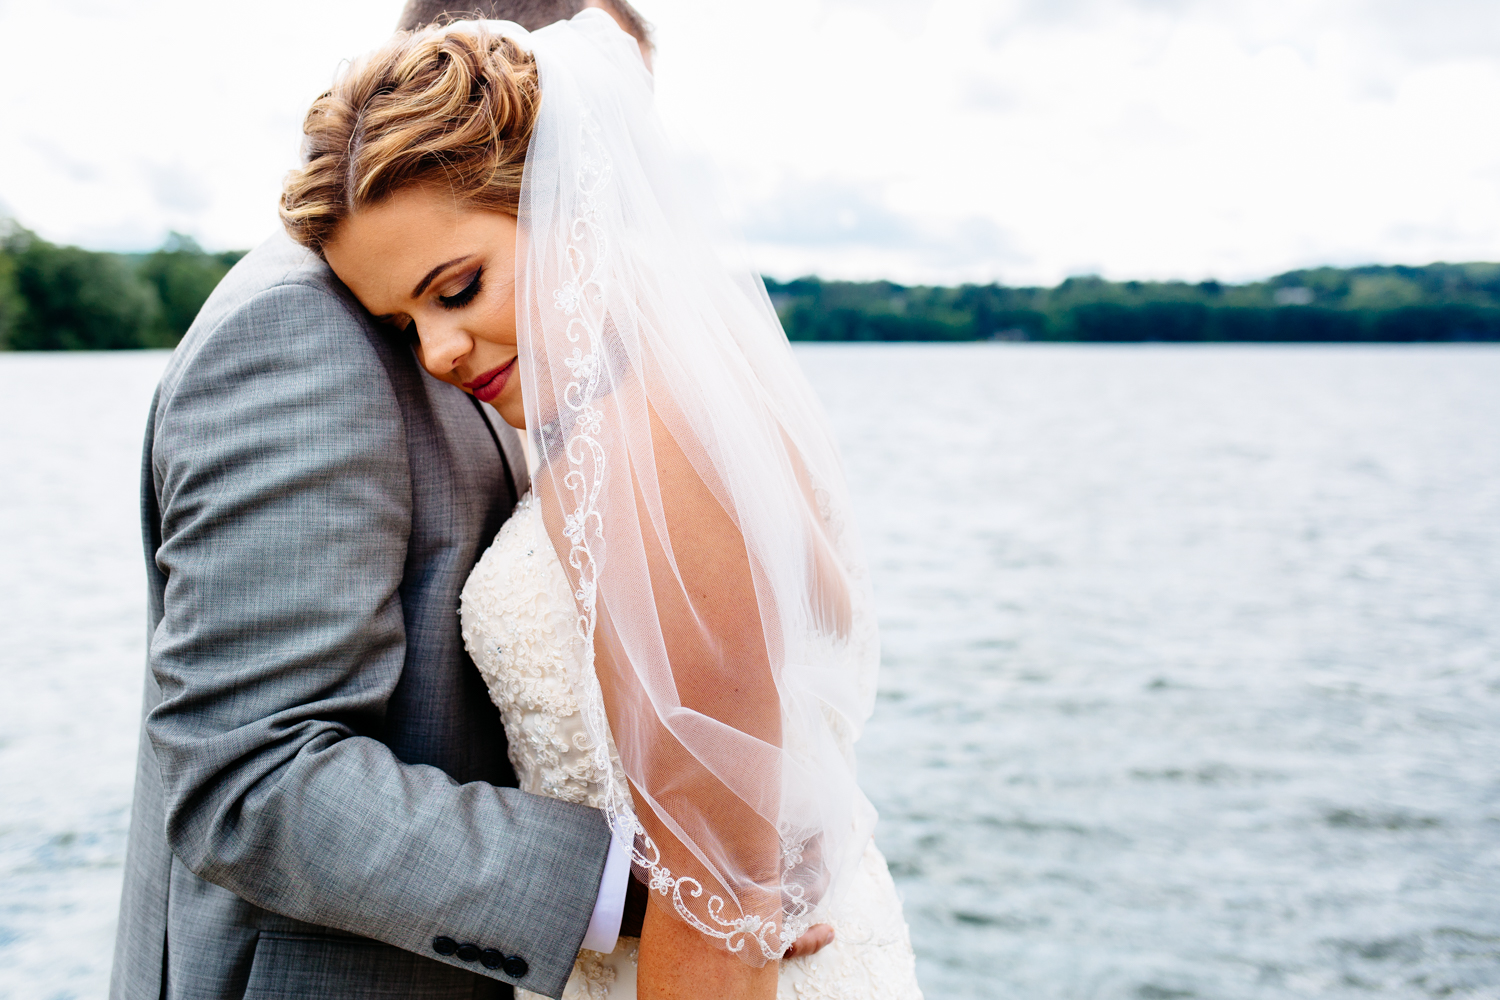 Bride rests her head on grooms shoulder. She wears a veil. They are in front of a lake.